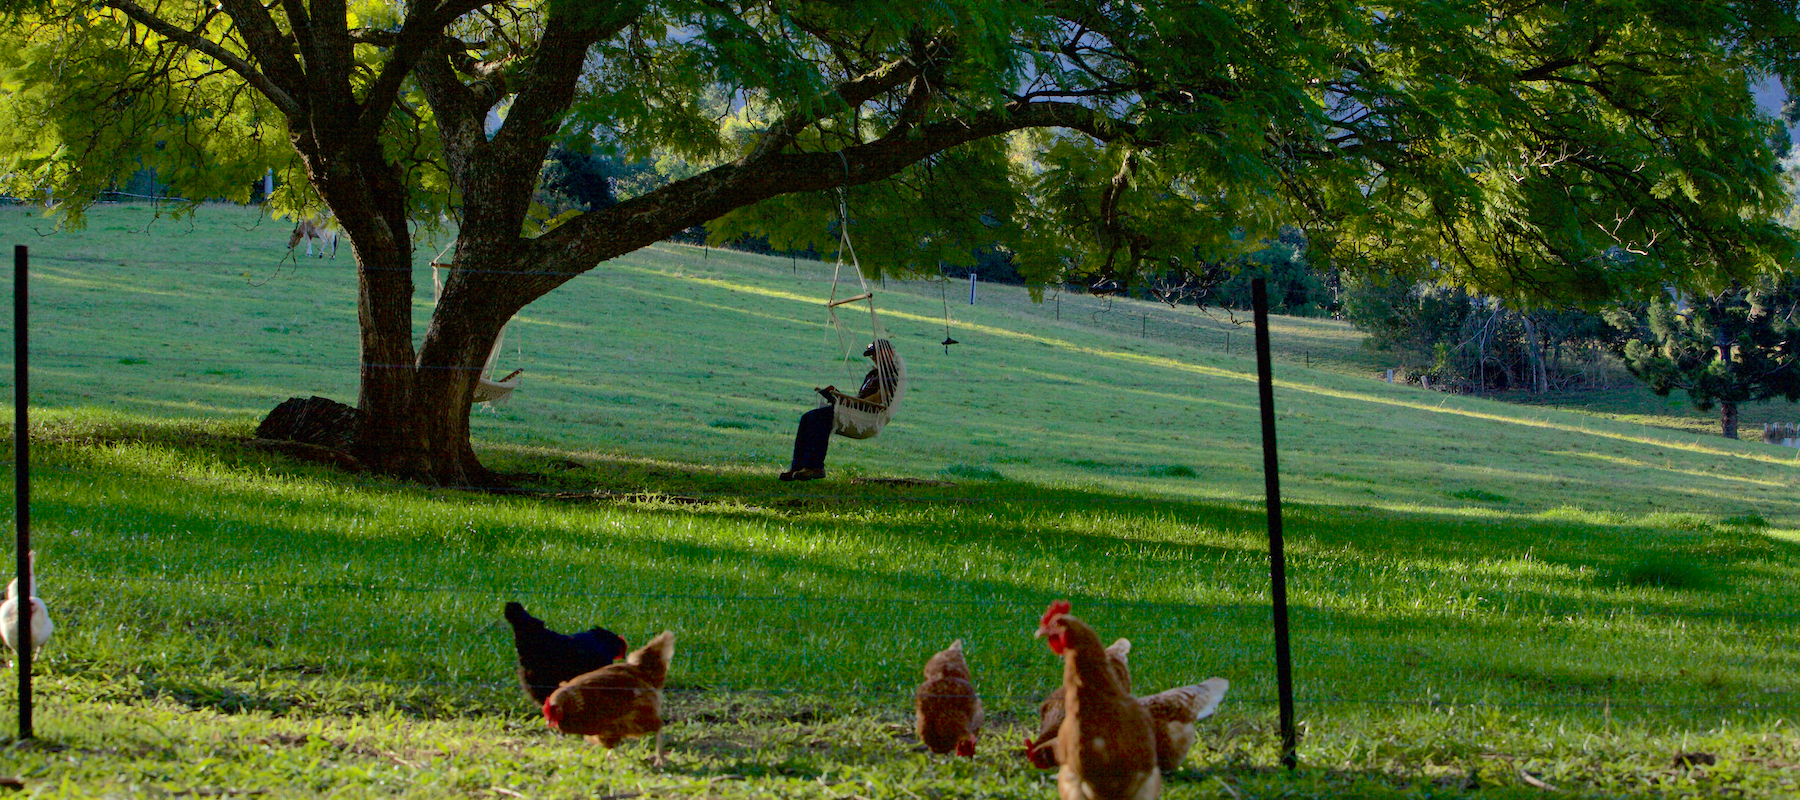 bellingen farmstay activities, nsw holidays, rustic cabin holiday accommodation